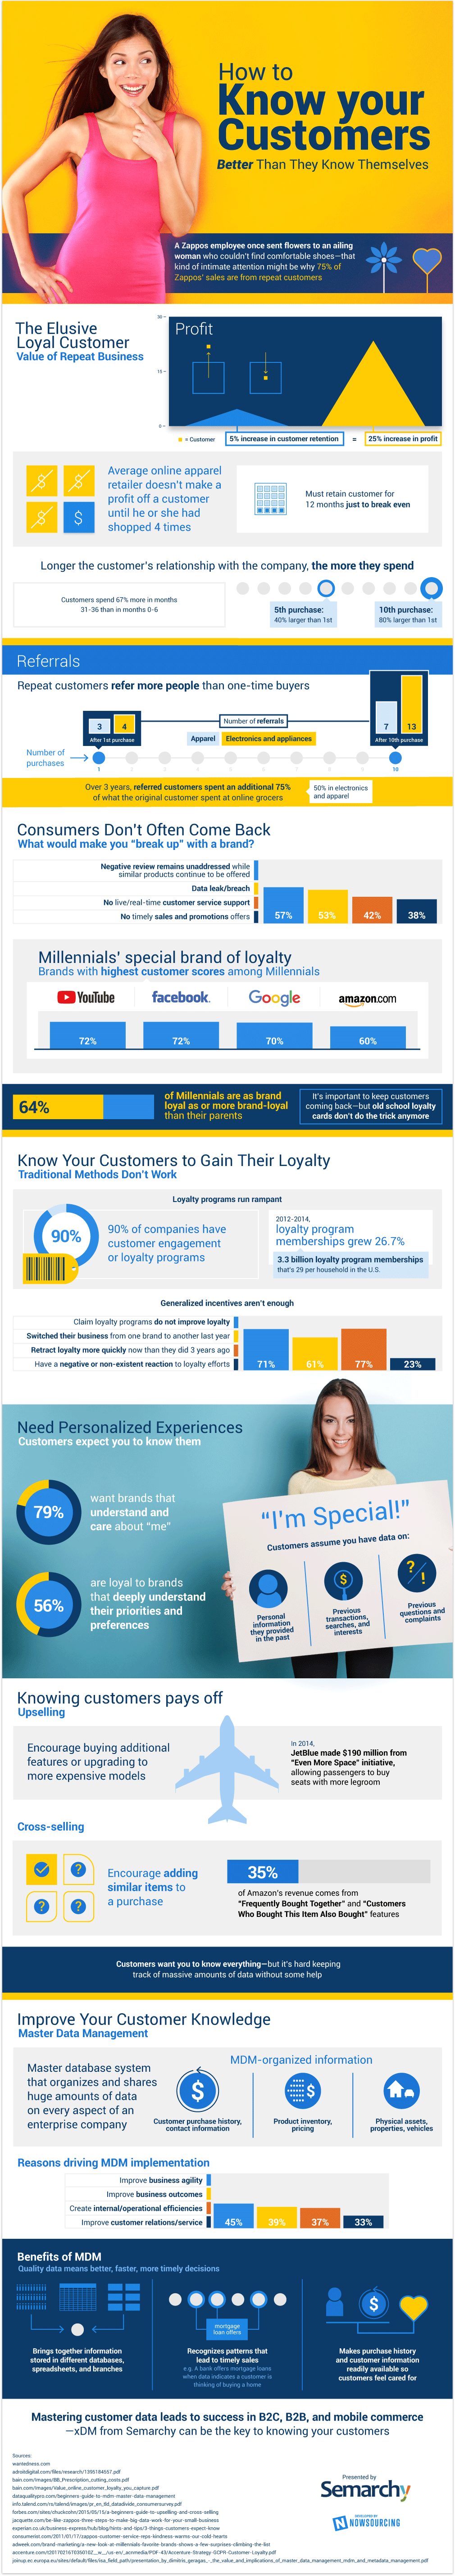 Know Your Customers! #infographic